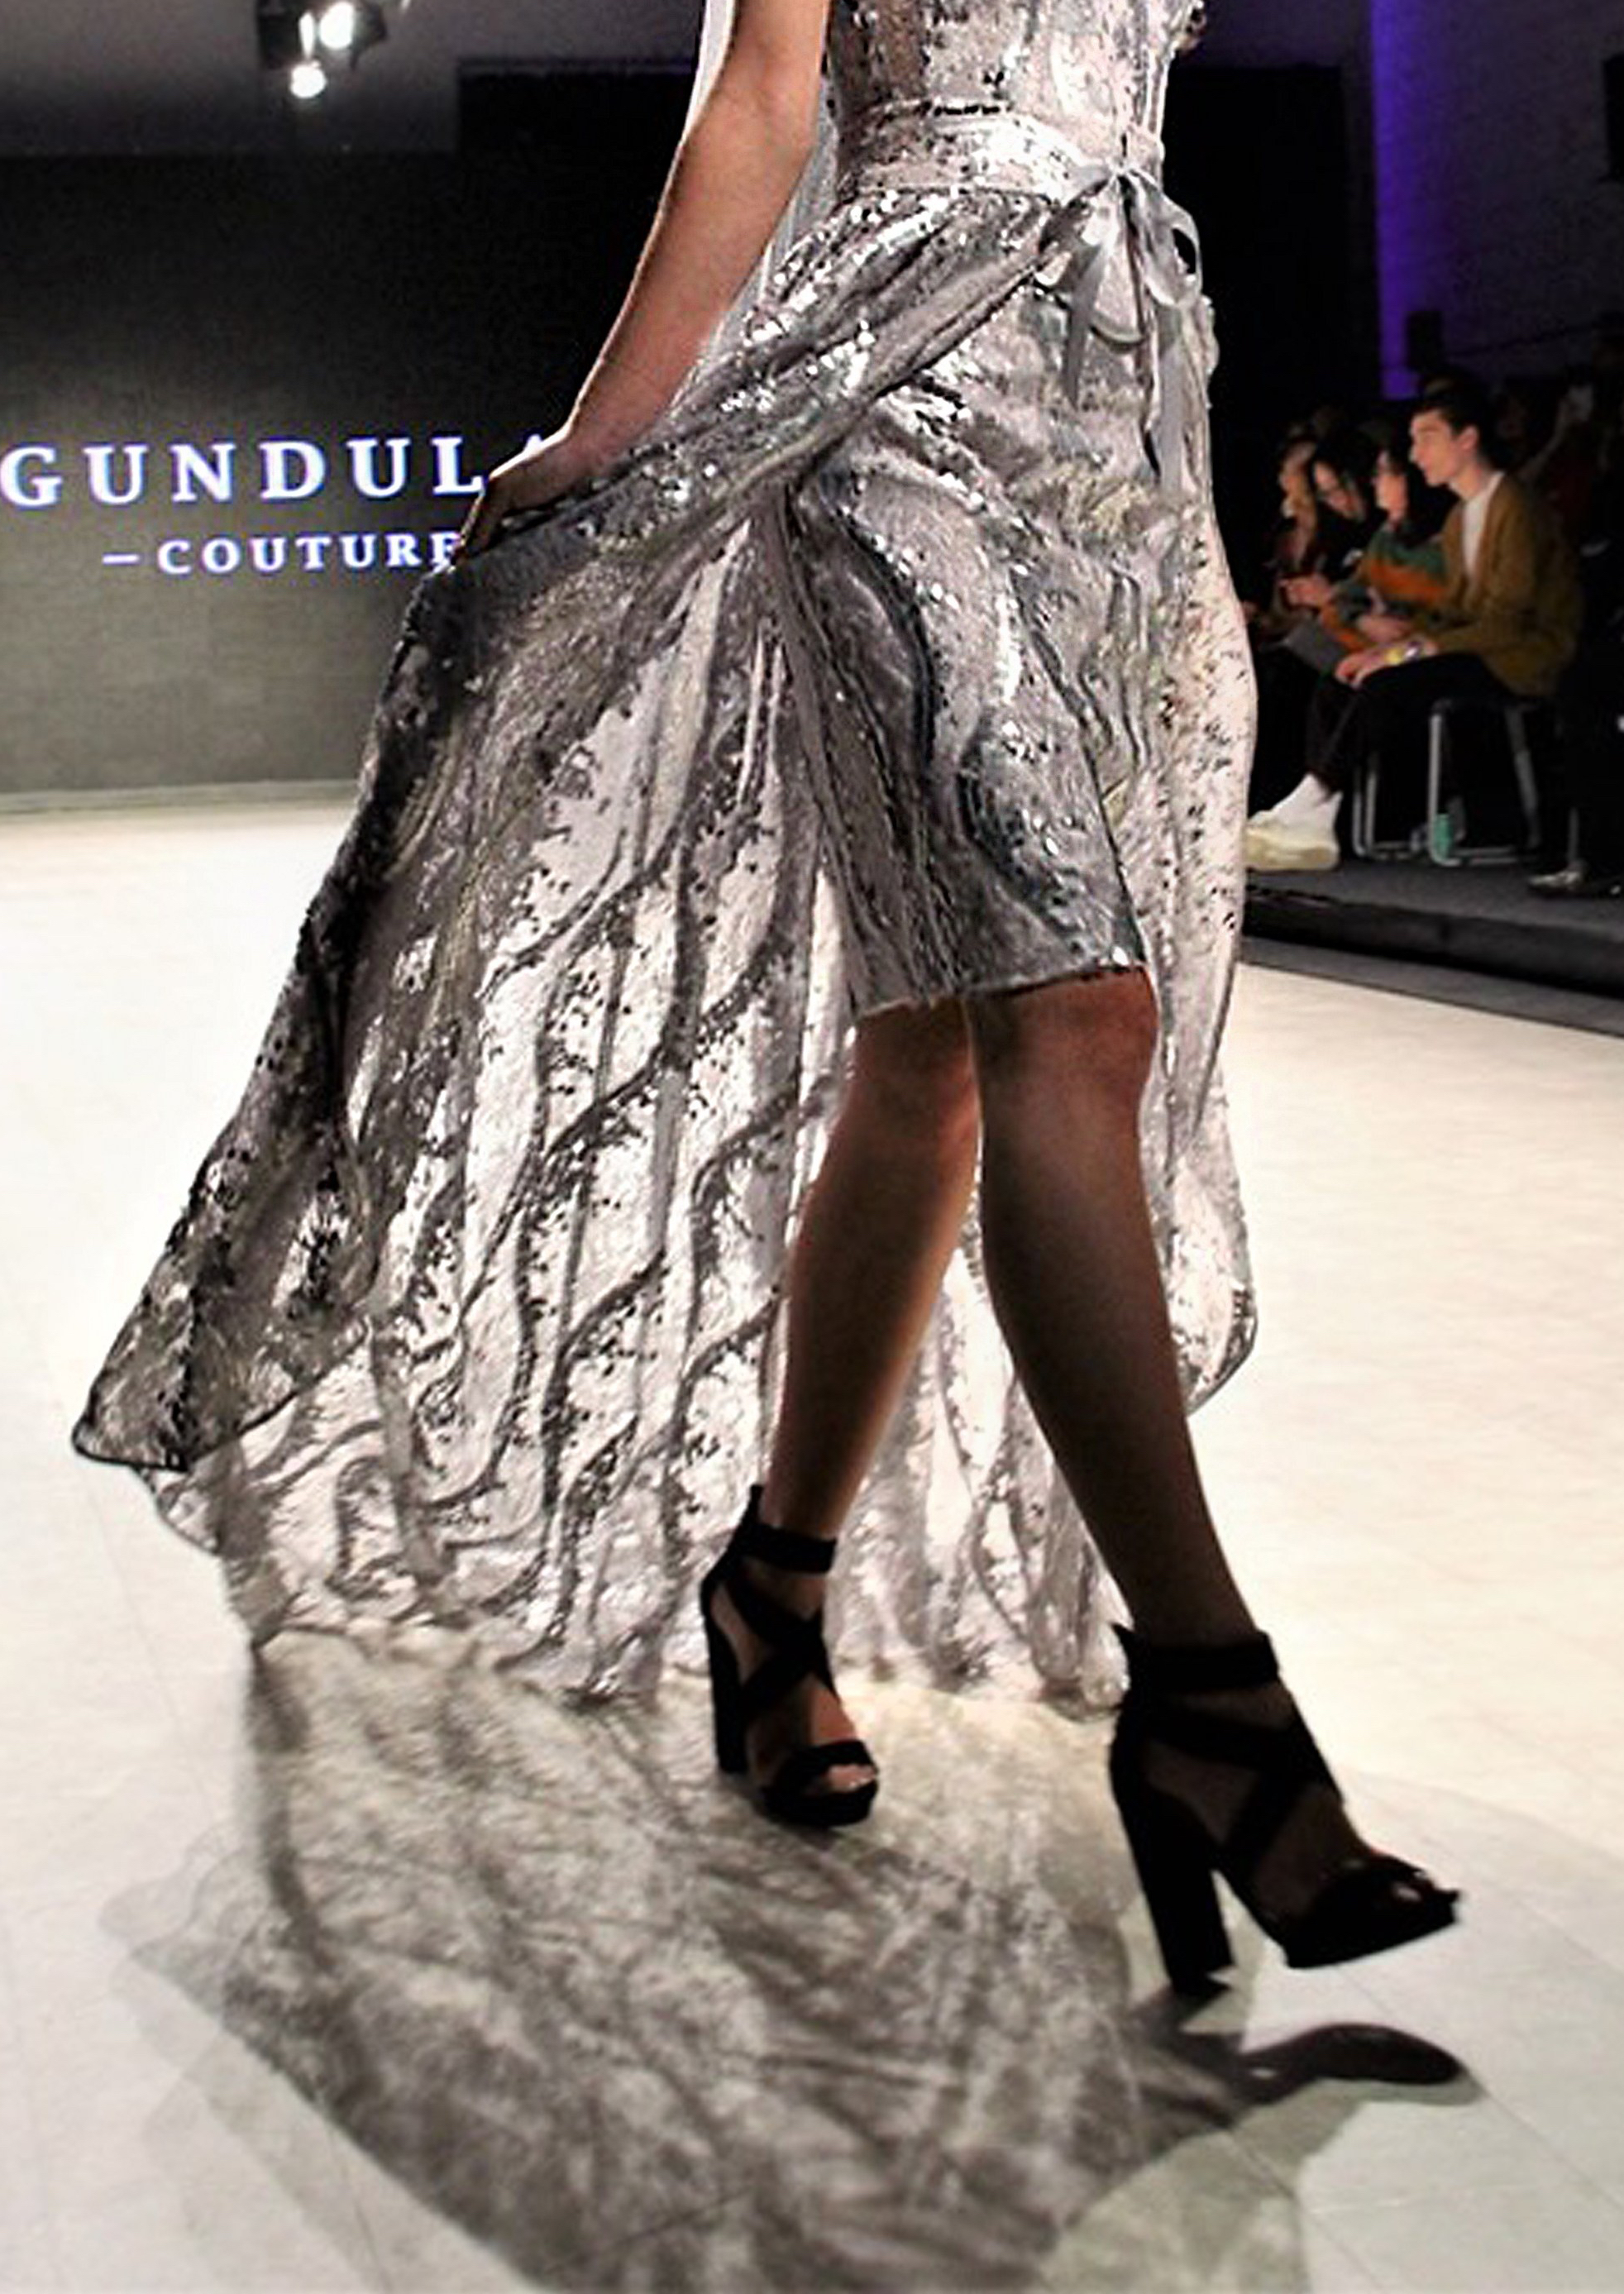 Photo by Mac C Yeah - Edits by Gundula Hirn - Model Laura Liu walking Vancouver Fashion Week Runway